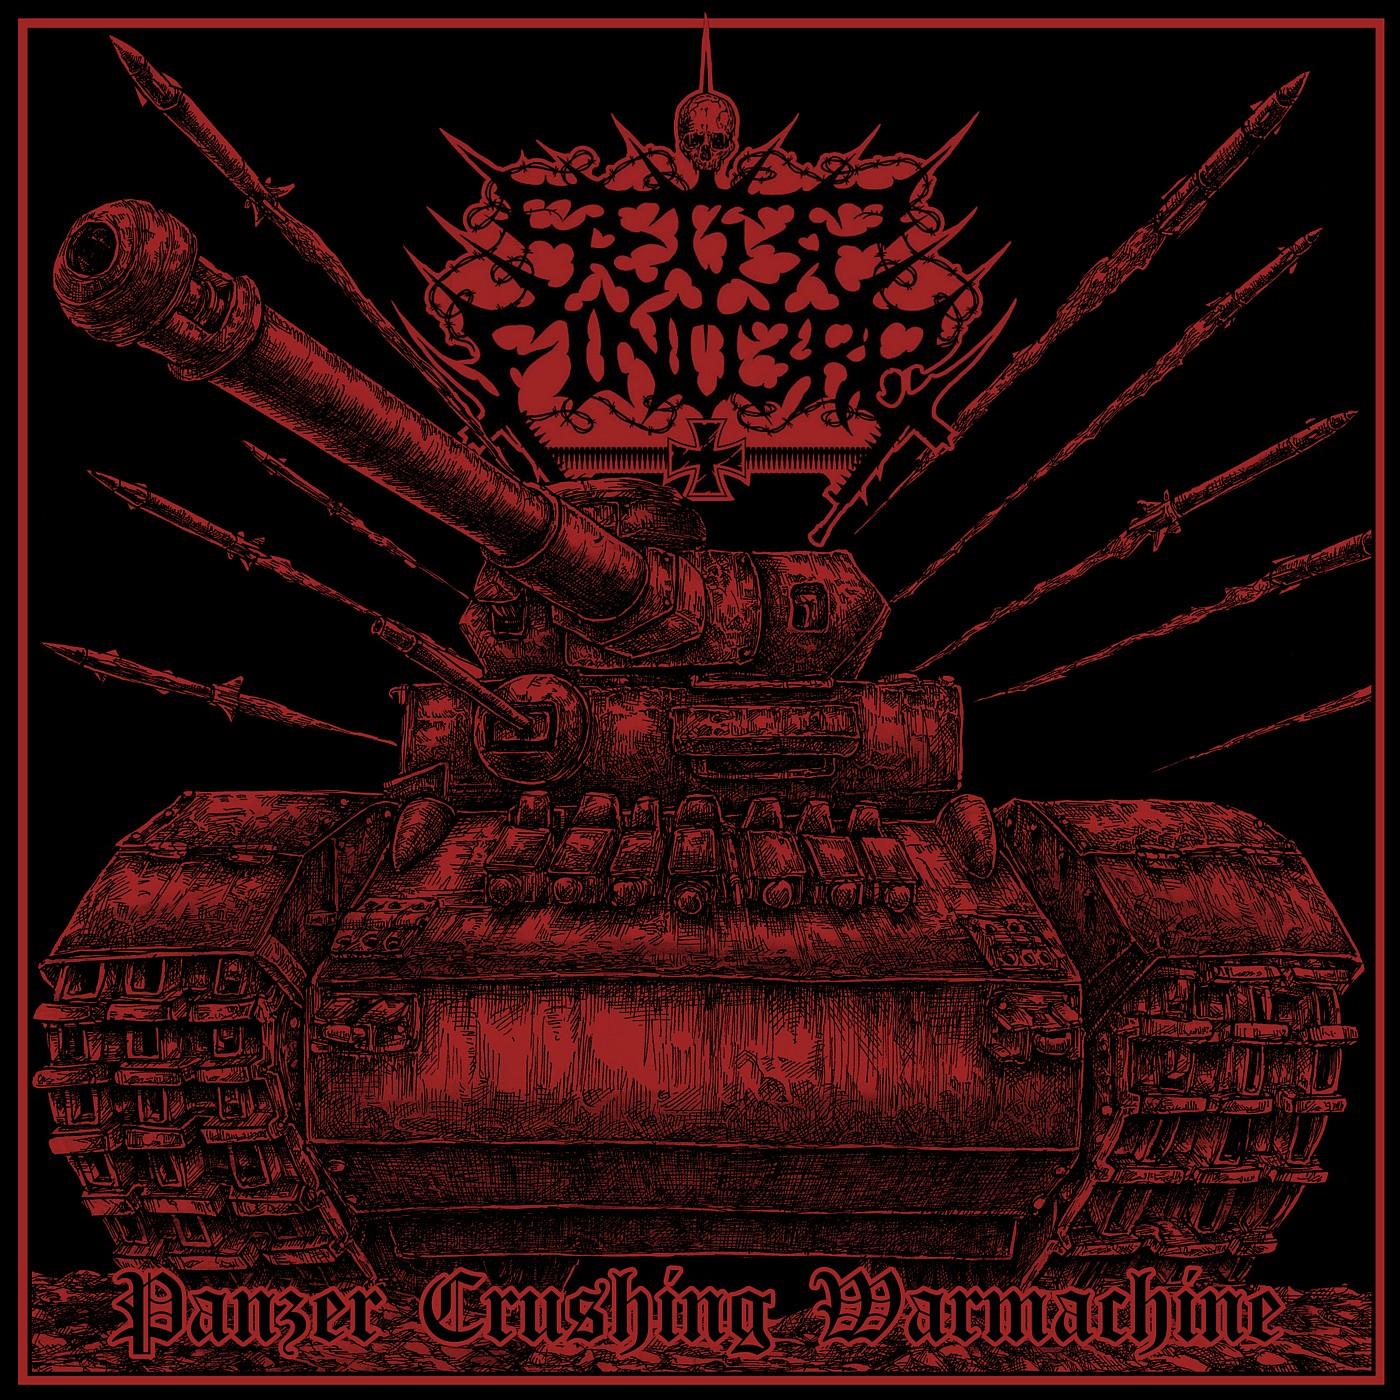 SF – Panzer Crushing Warmachine Cover bandcamp